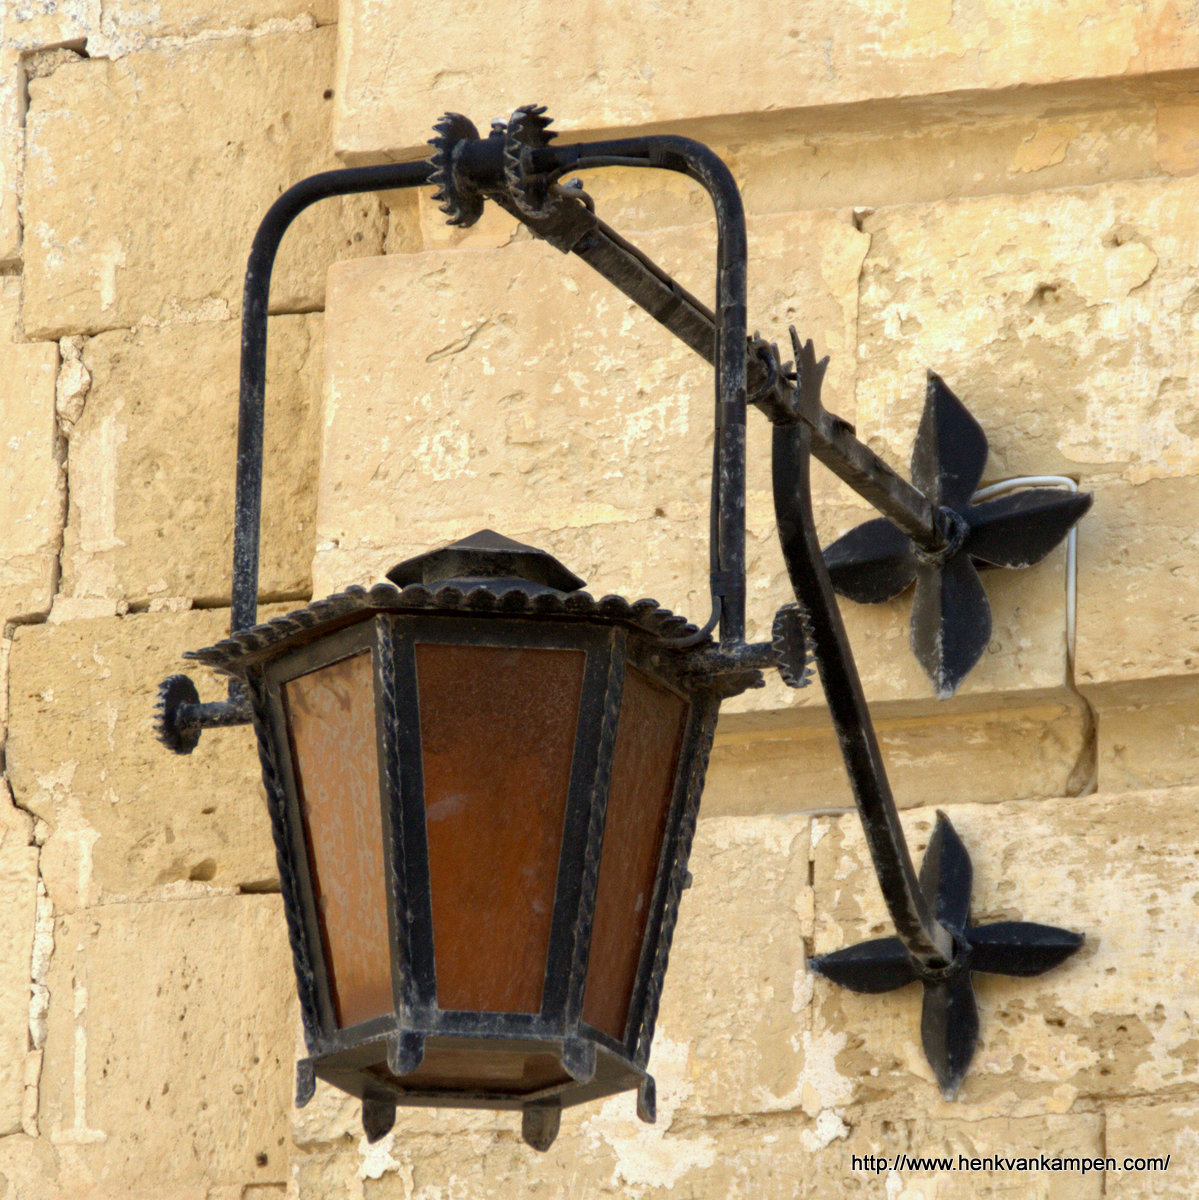 A lantern in the streets of Mdina, Malta